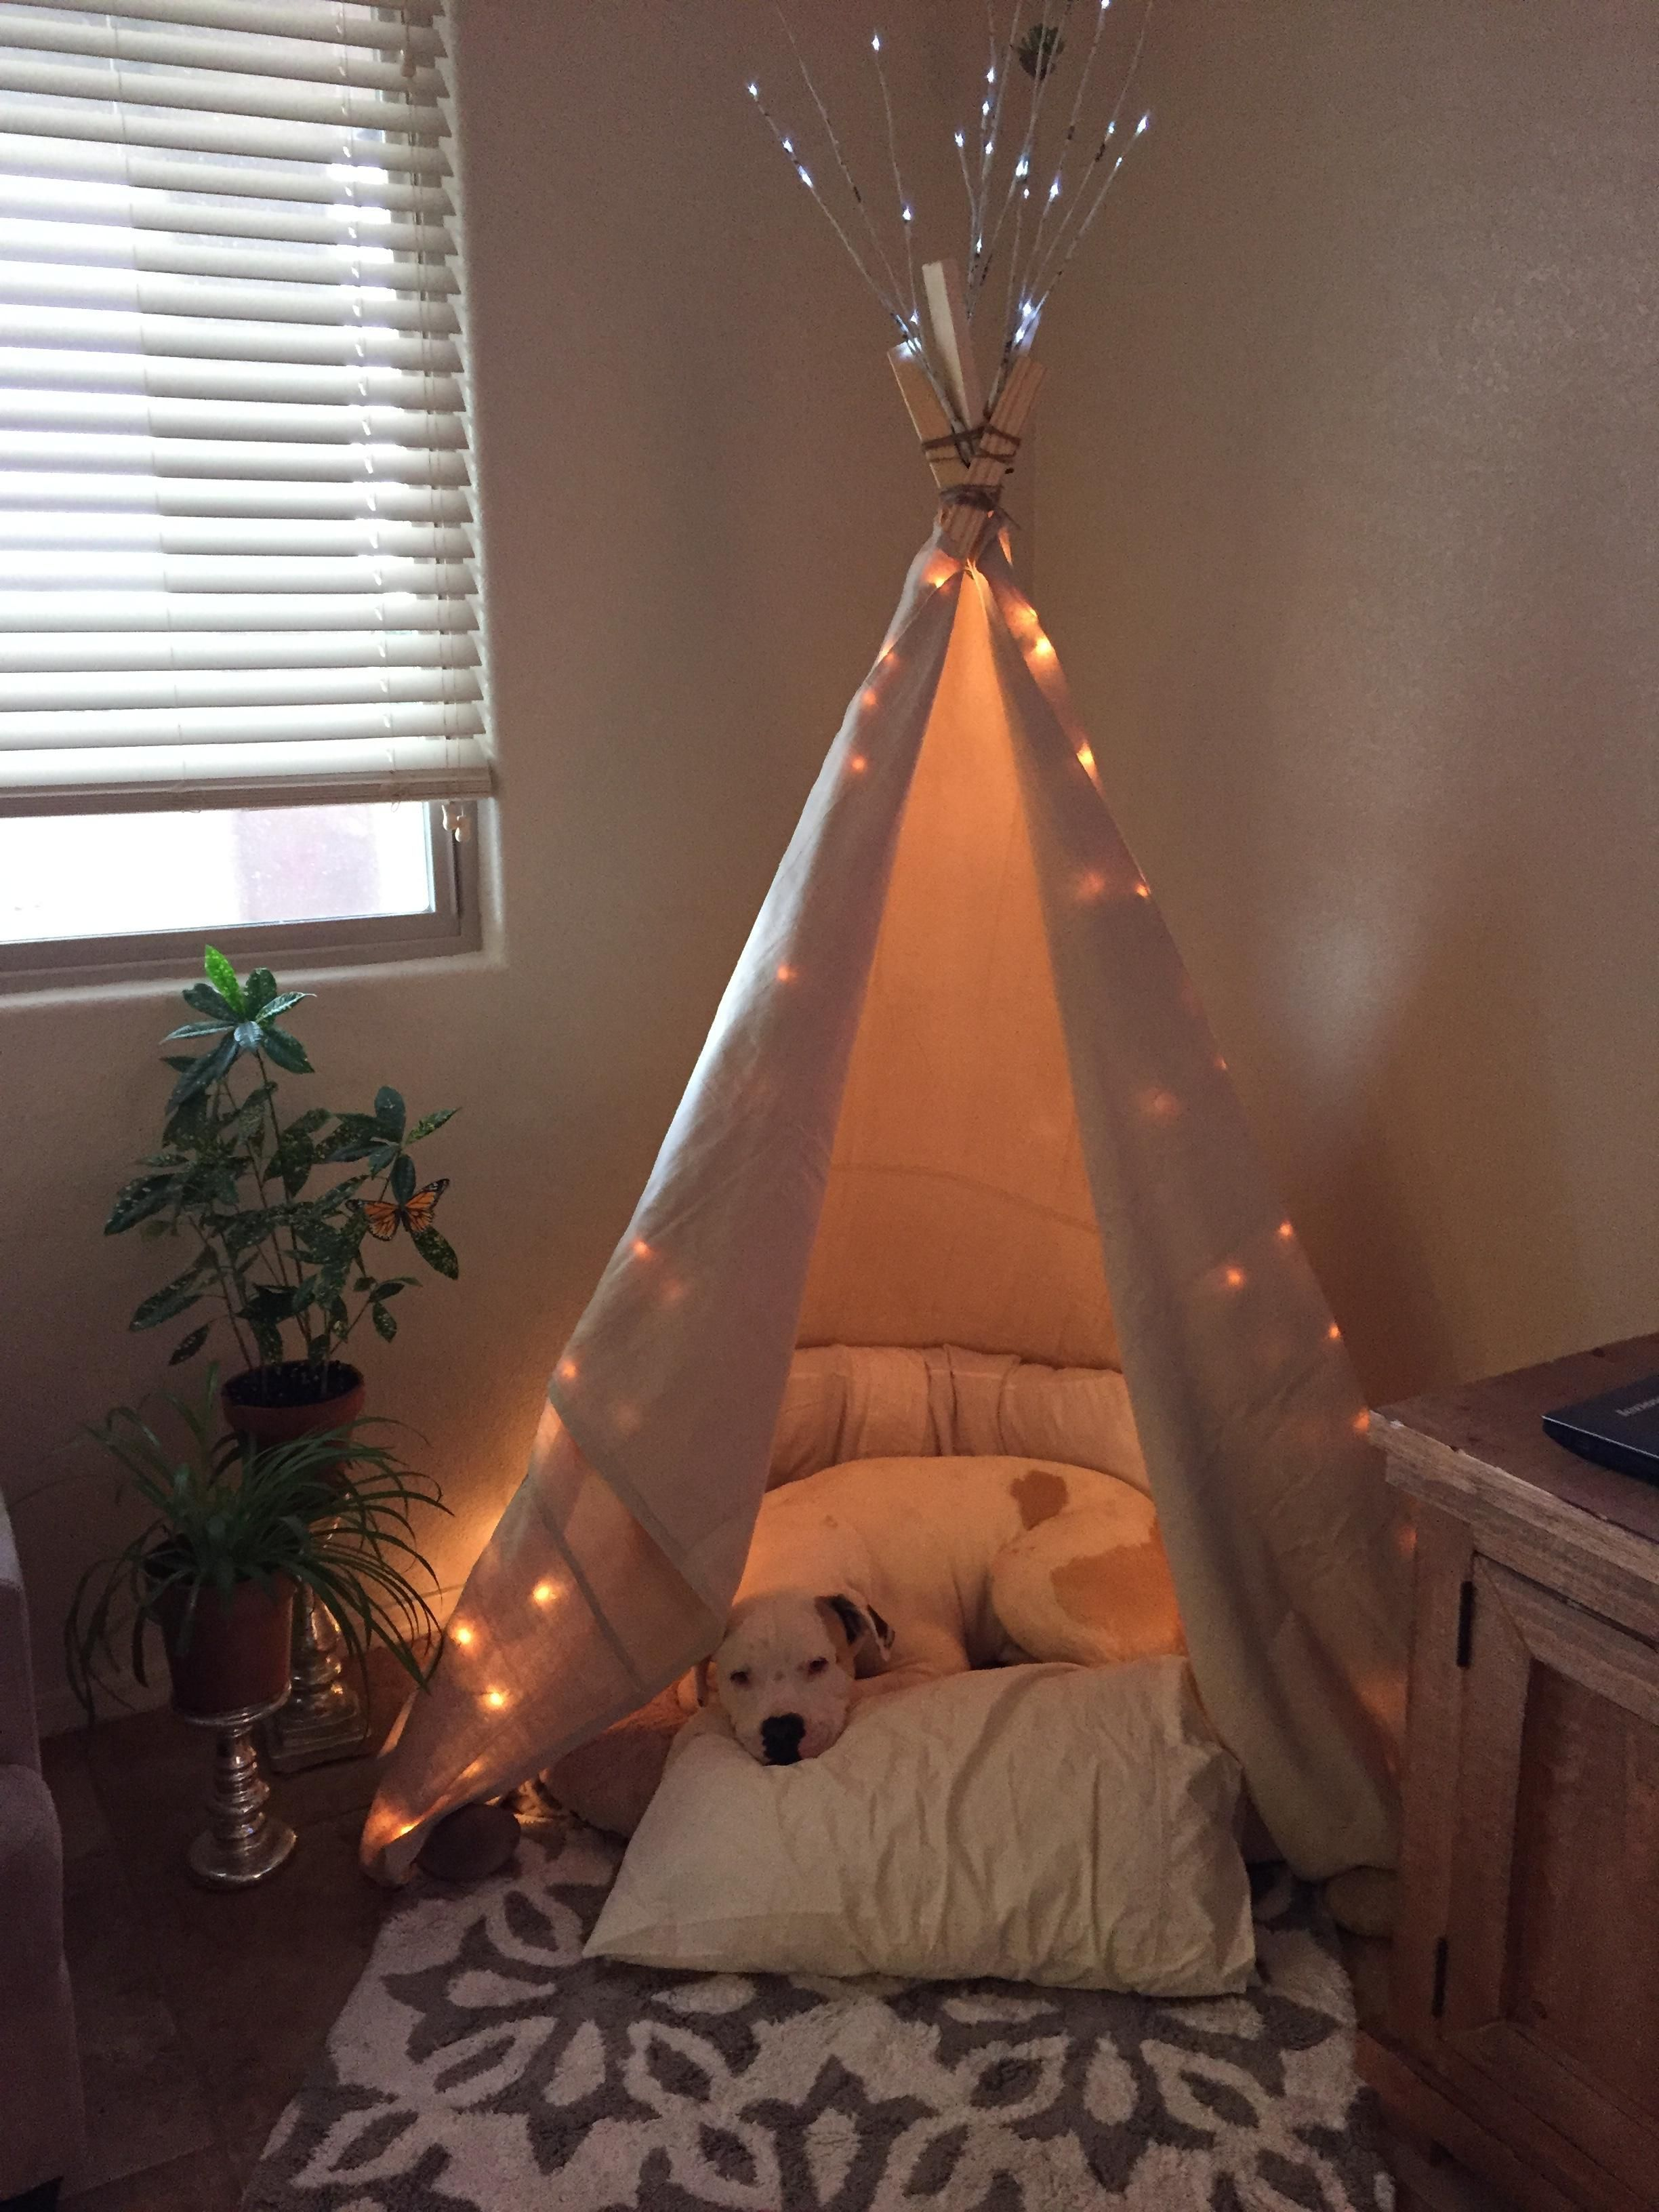 Cool 24 Awesome Pets Room Https Meowlogy Com 2018 02 08 24 Awesome Pets Room You Won T Ever Know Whether A Chat Room I Puppy Room Dog House Diy Dog Bedroom